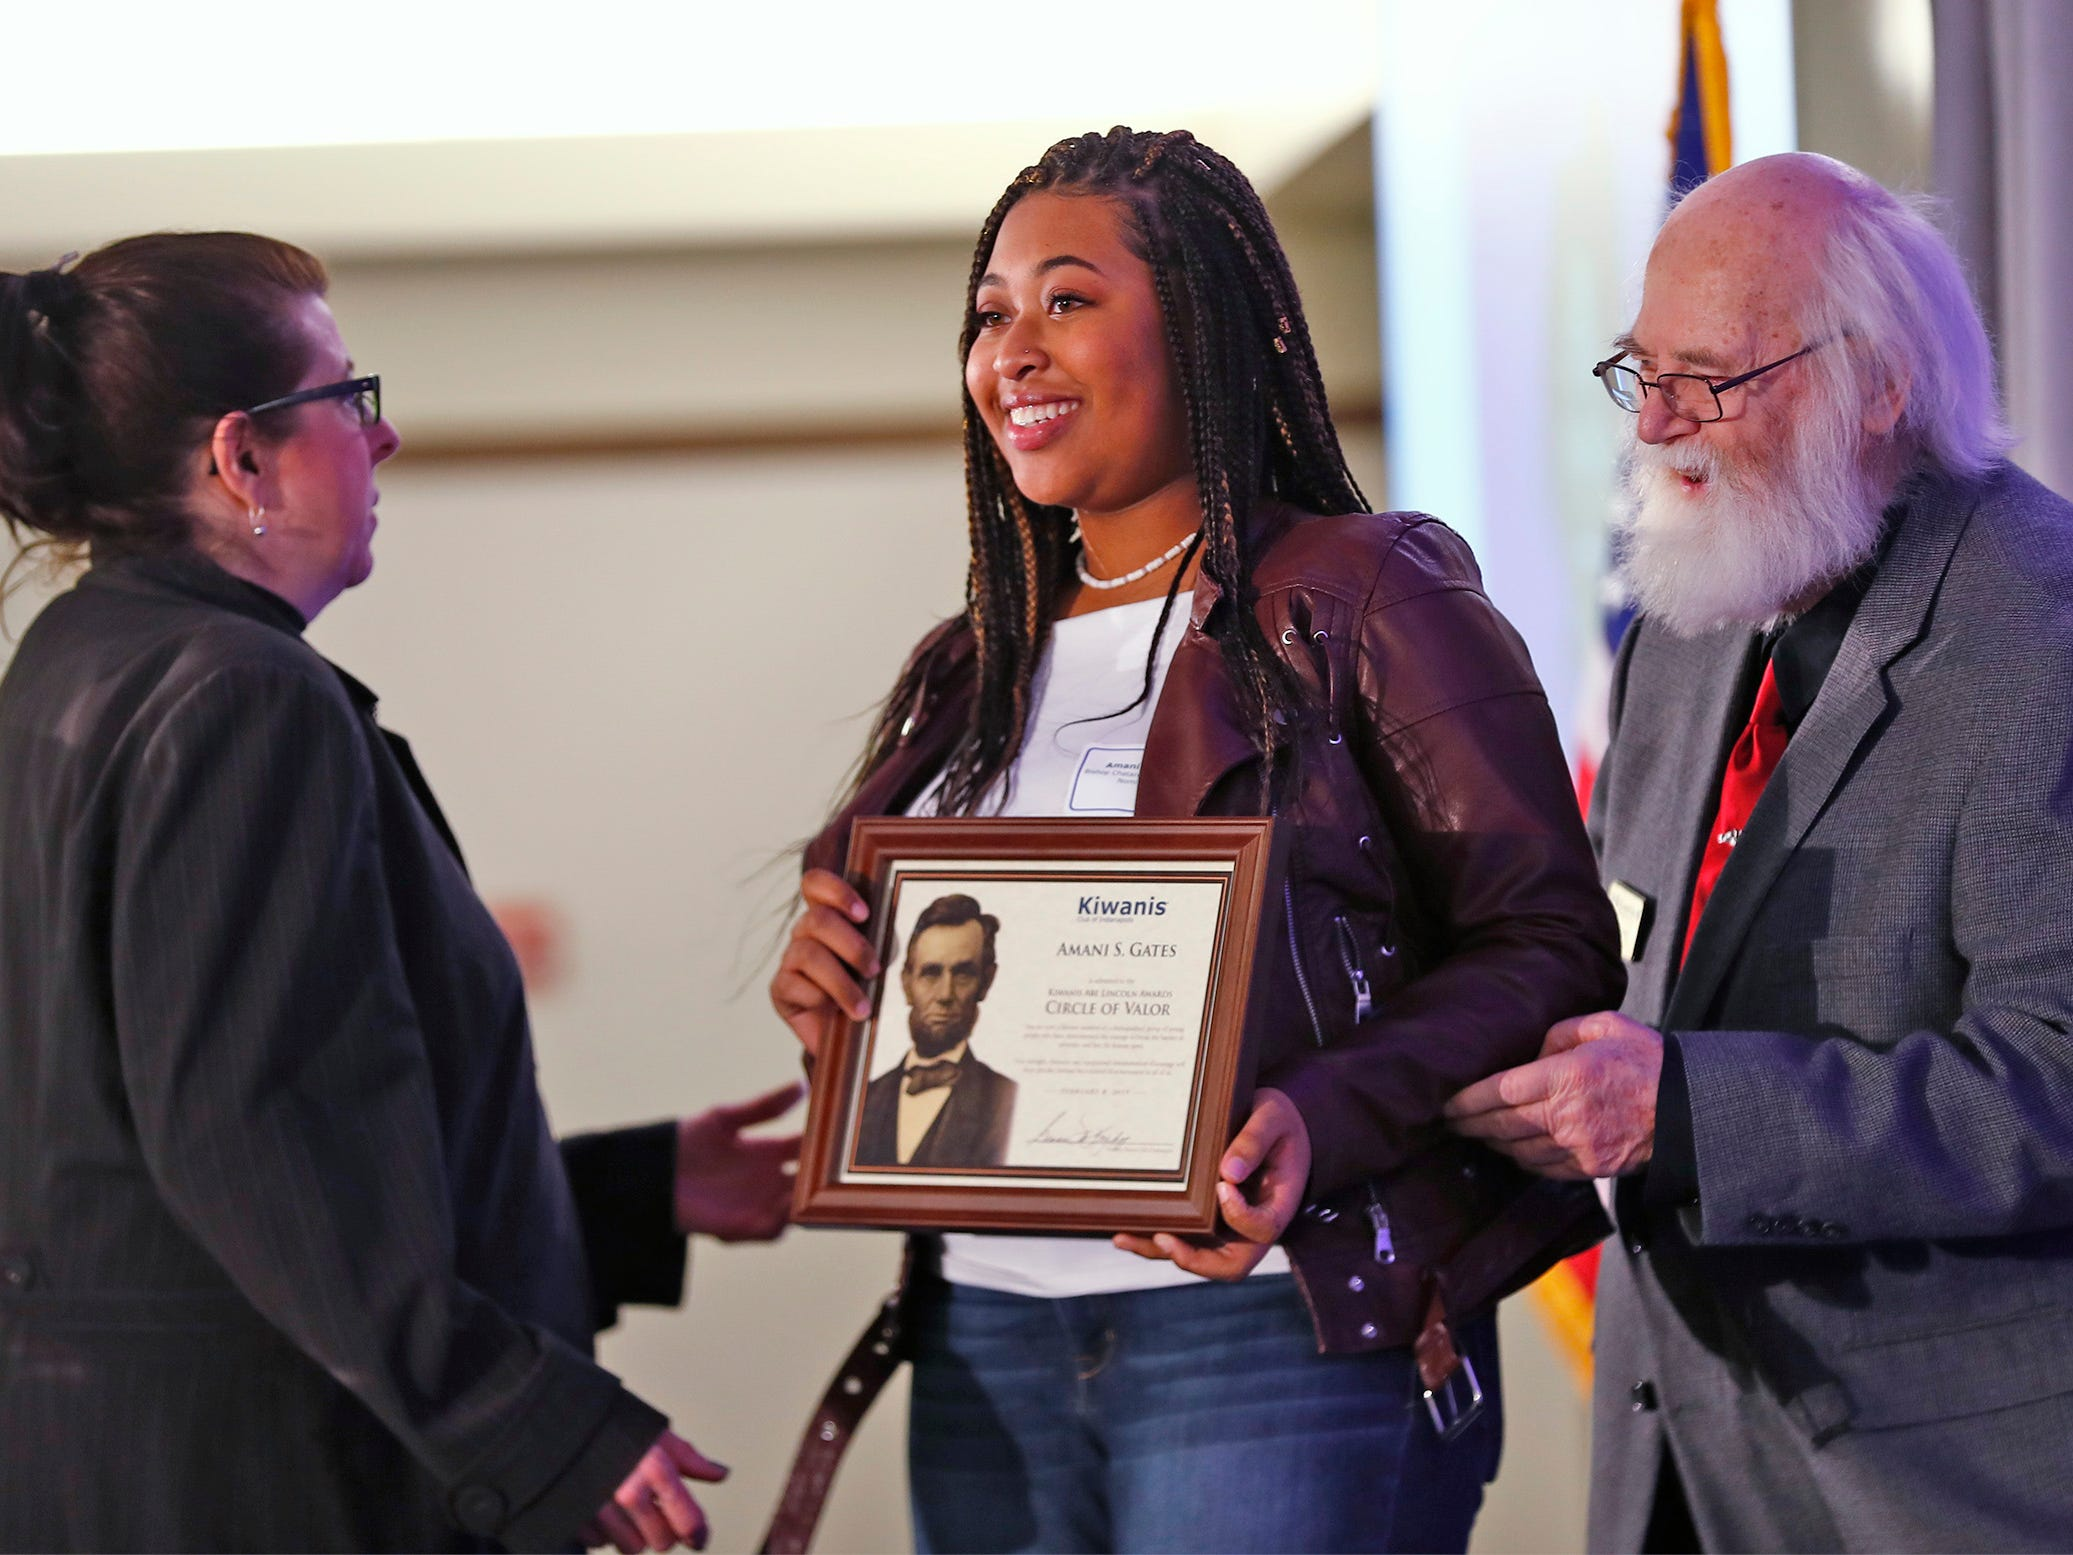 Bishop Chatard High School student Amani Gates, center, is honored with a Circle of Valor award at the 44th Annual Abe Lincoln Awards Program, Friday, Feb. 8, 2019. The Kiwanis Club of Indianapolis program was held at Ivy Tech Community College.  20 high school student were honored at the annual event which celebrates overcoming adversity in life to succeed.